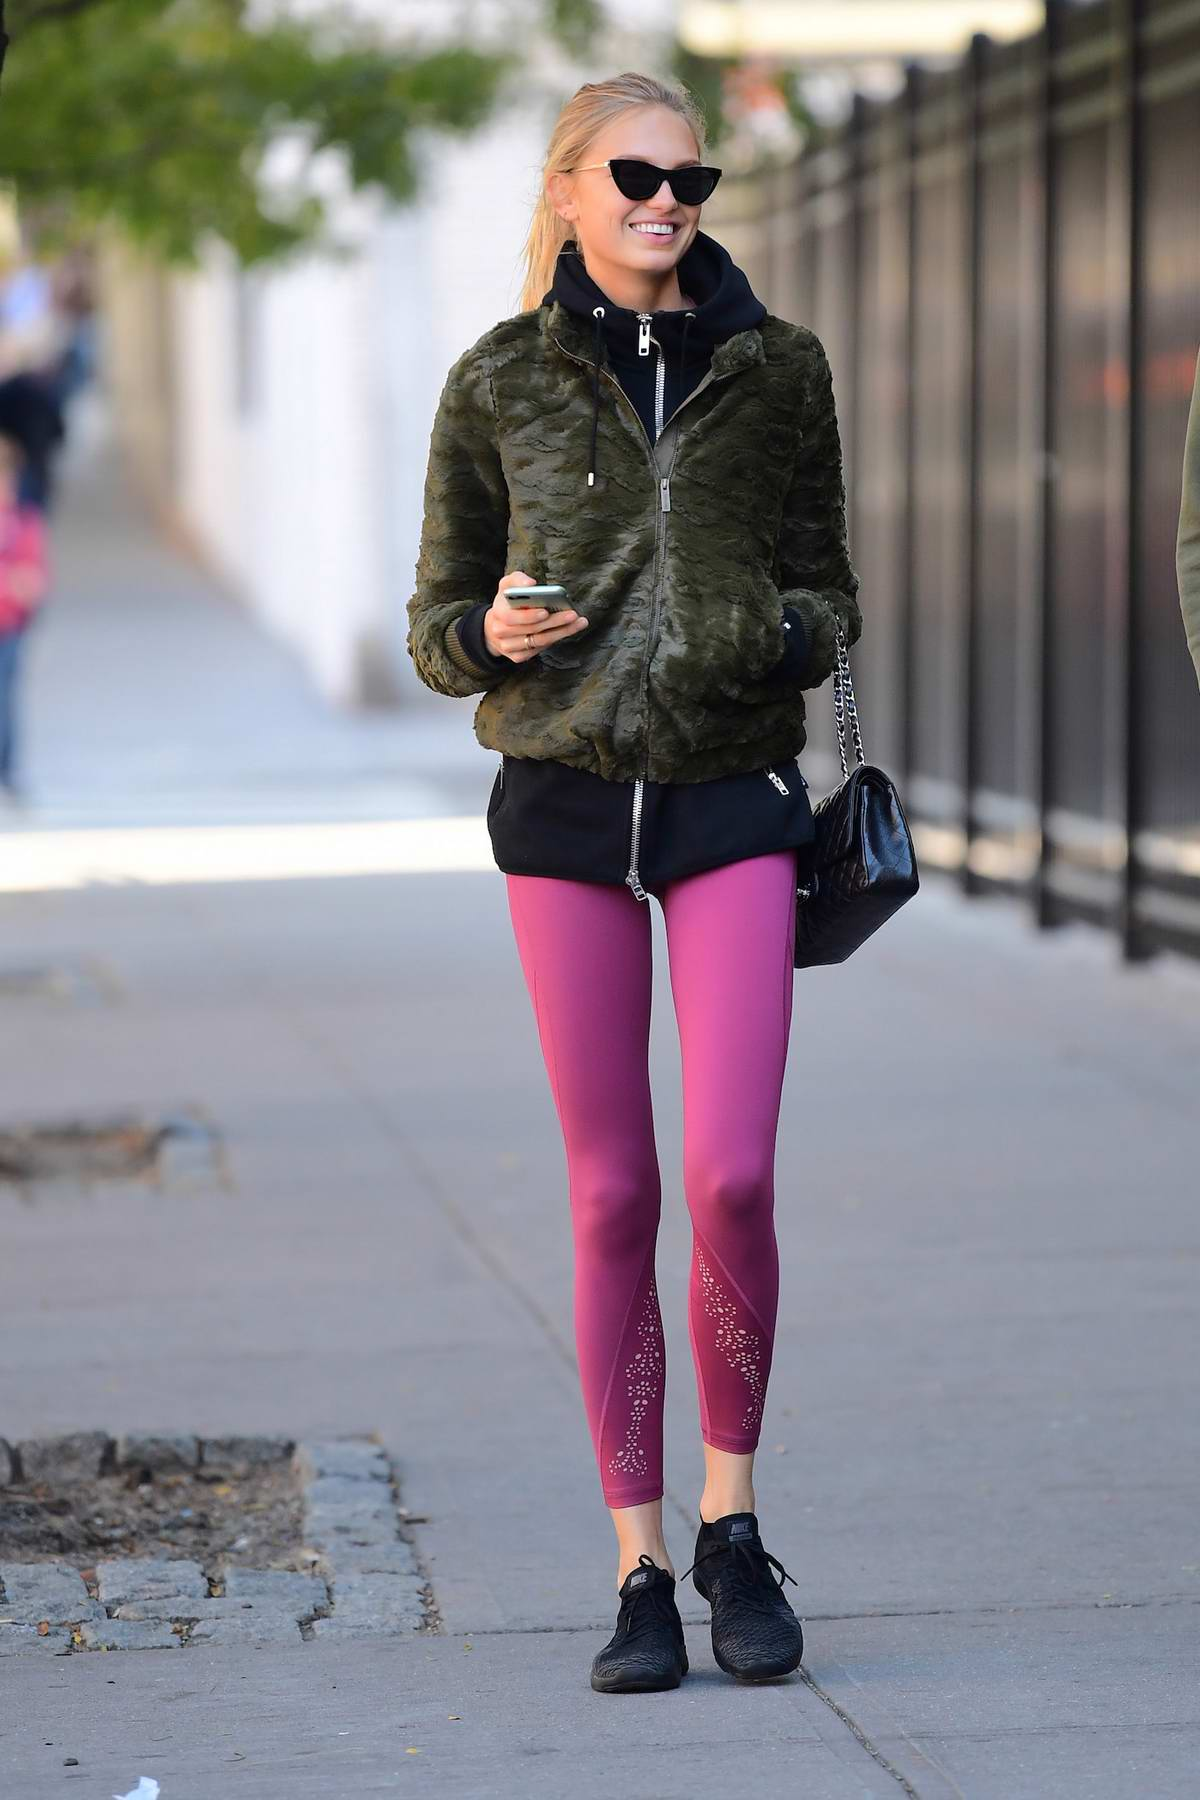 Romee Strijd In Pink Leggings Walks Out With Her Boyfriend